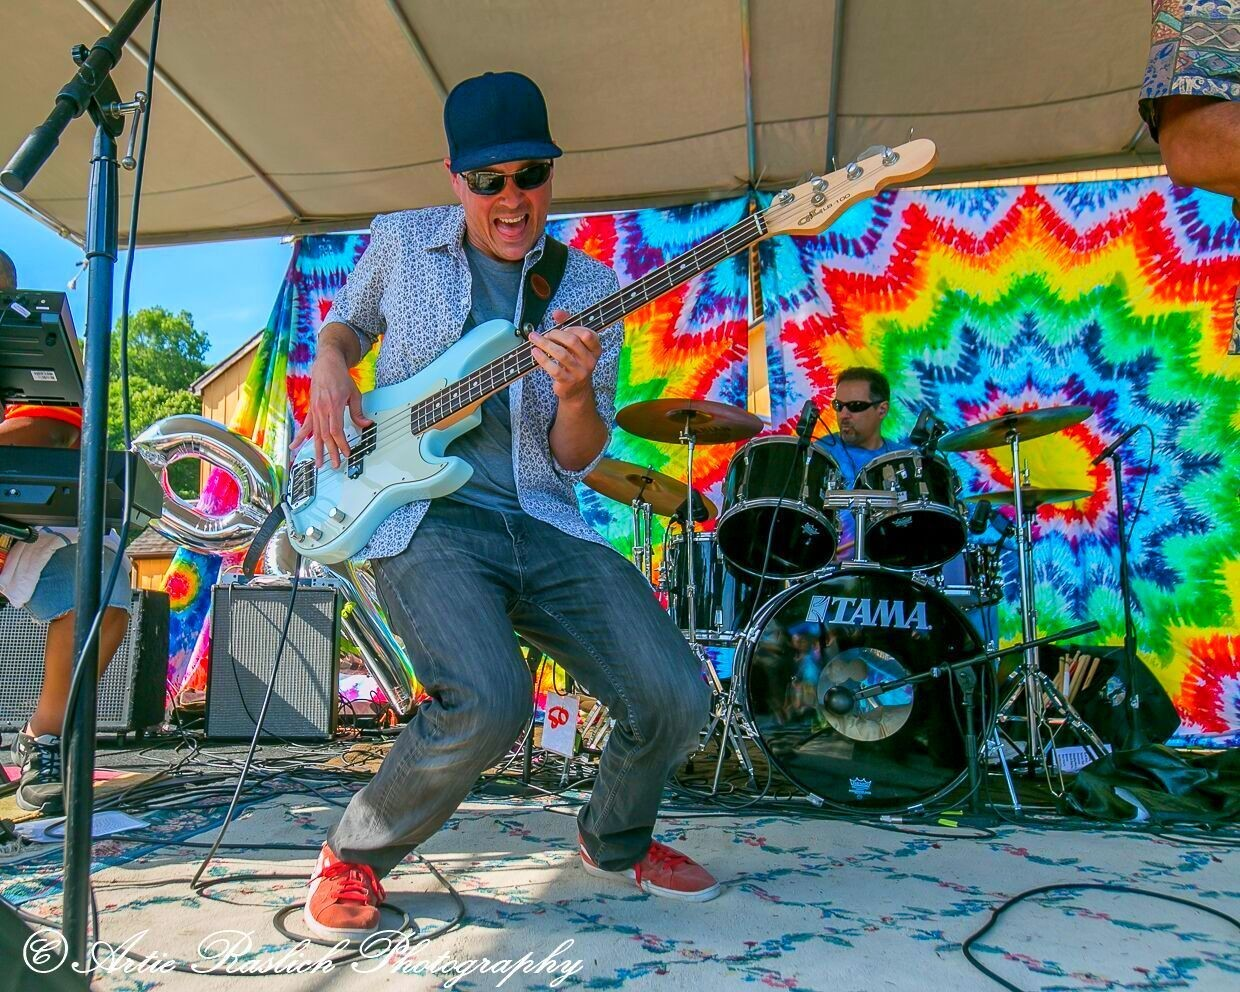 Tribute bands let loose on the festival stage.